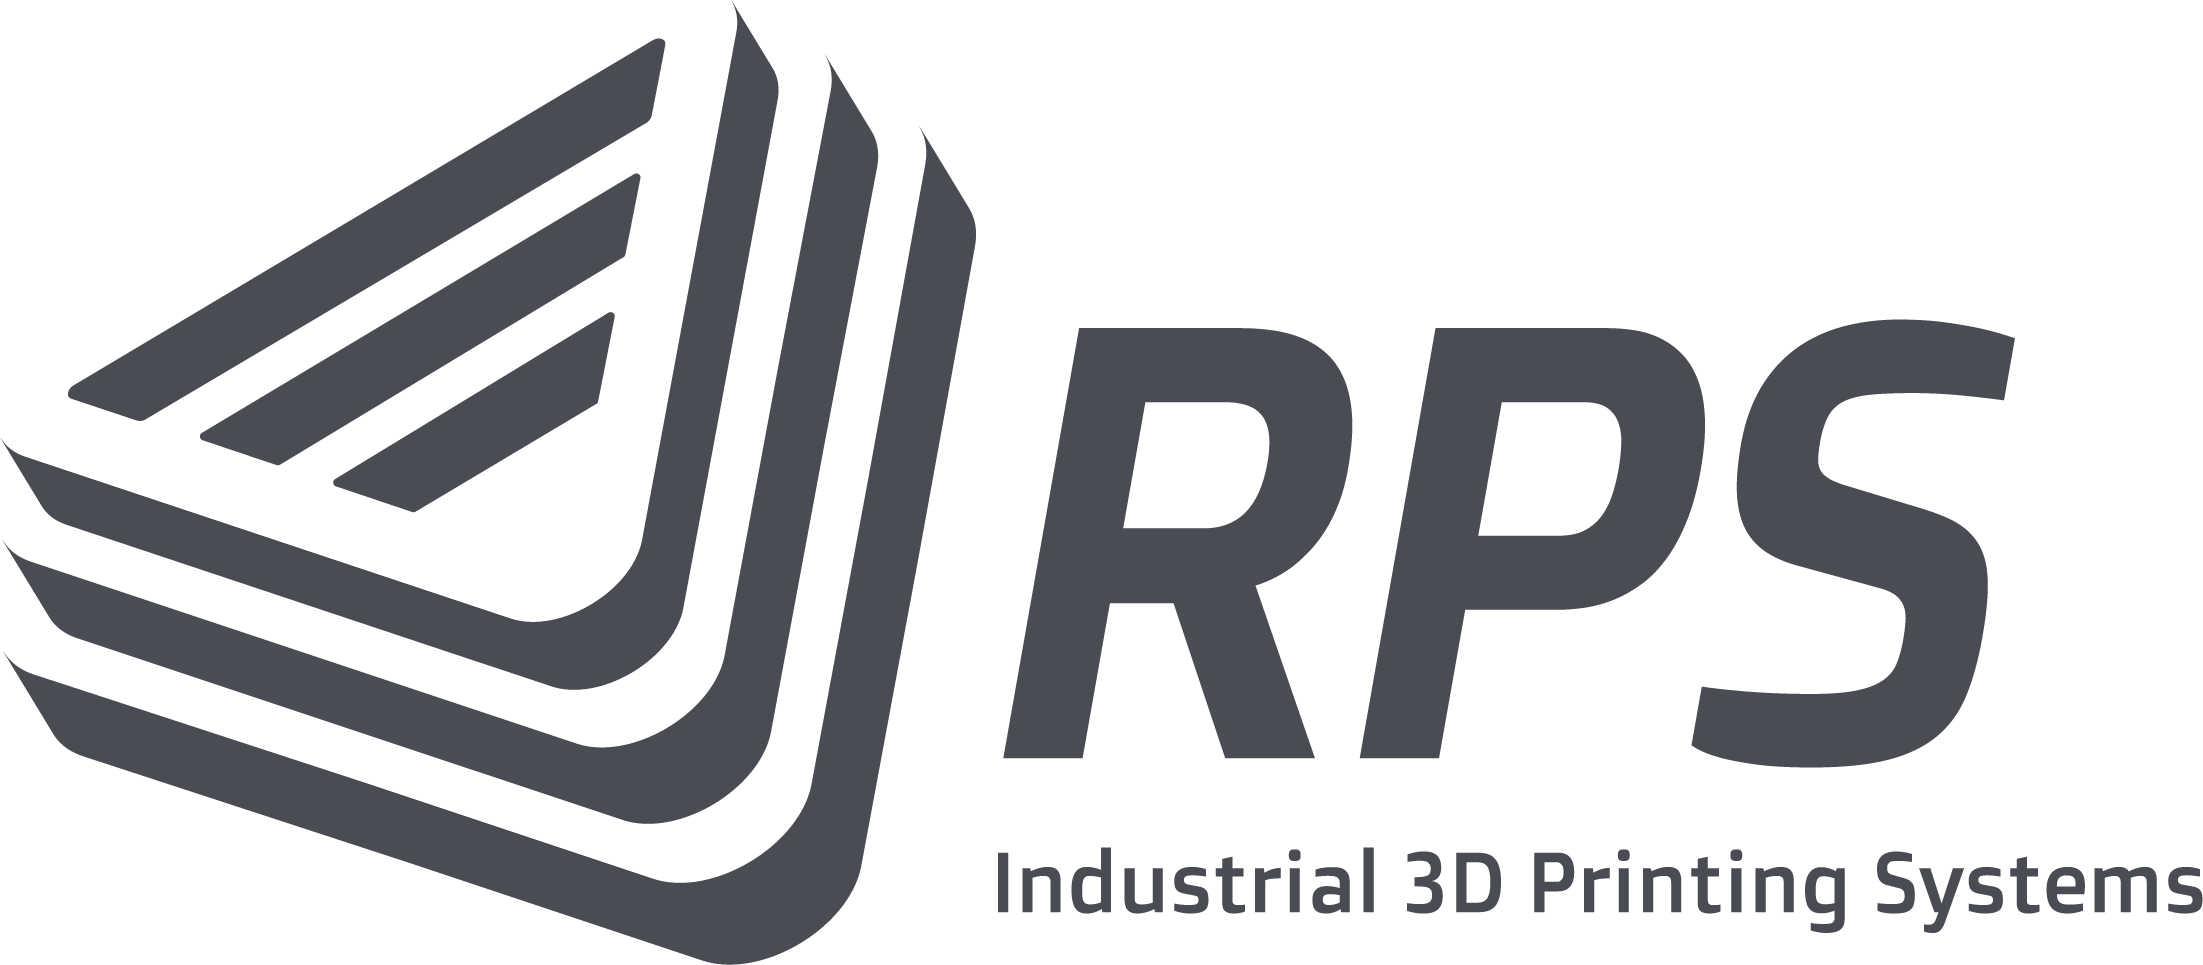 RPS - Industrial 3D Printing Systems